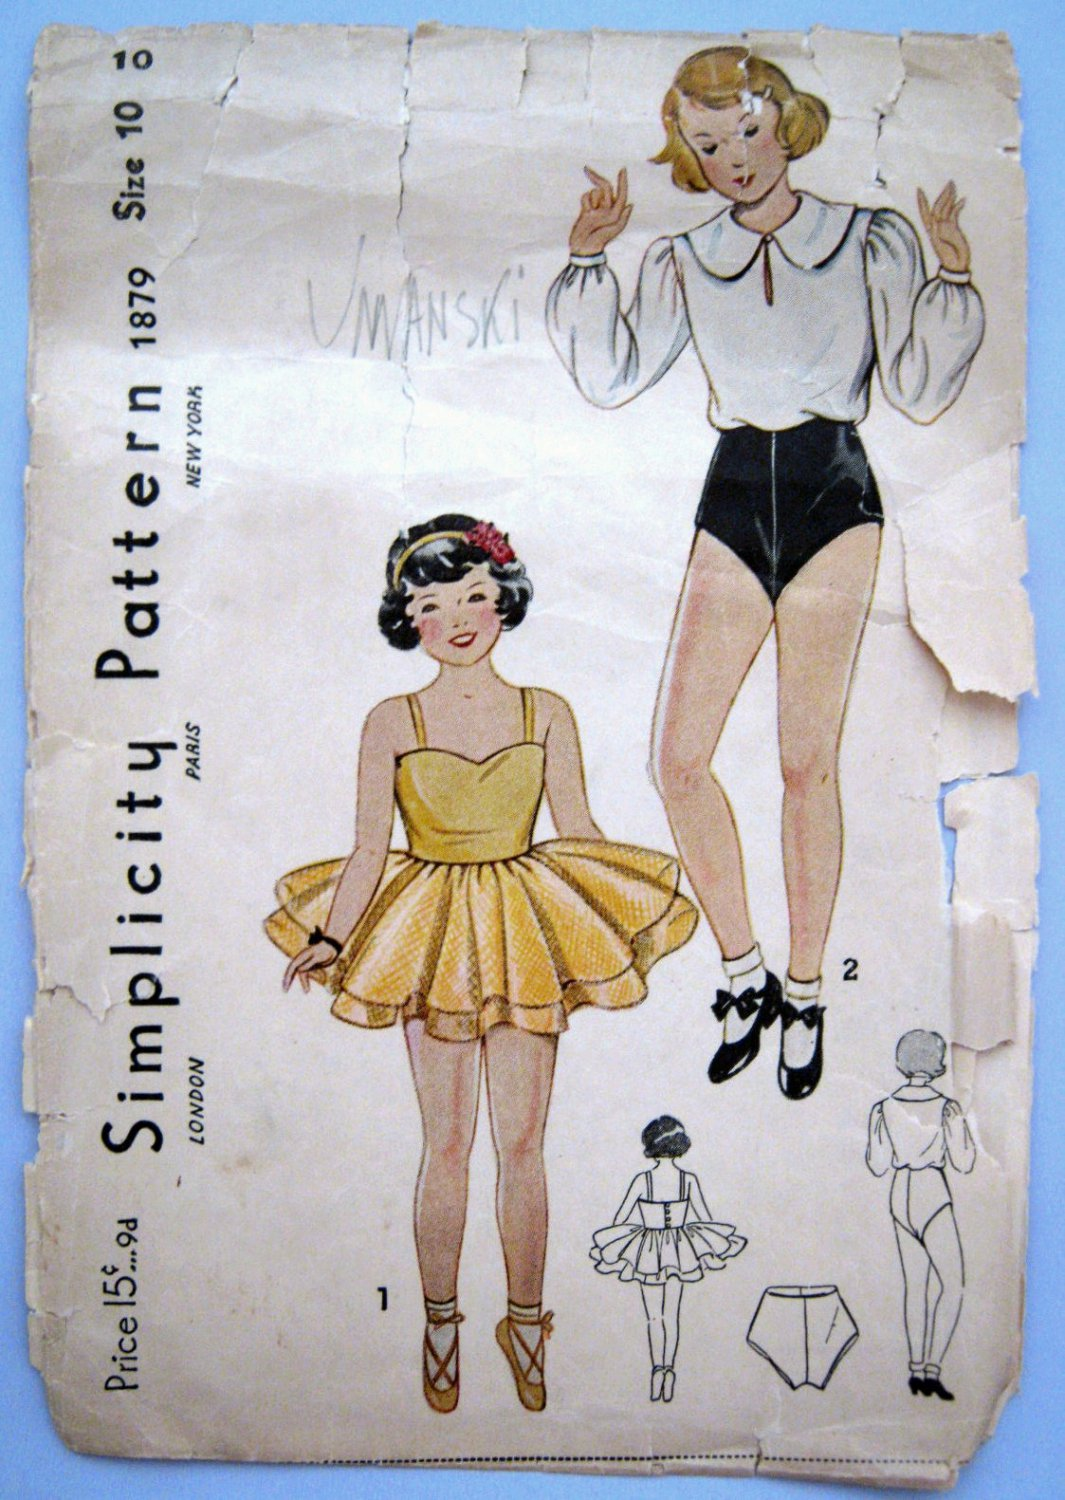 Vintage 1930s Tutu Ballet & Tap Dance Costume Sewing Pattern Simplicity 1879 Girls Size 10 Breast 28